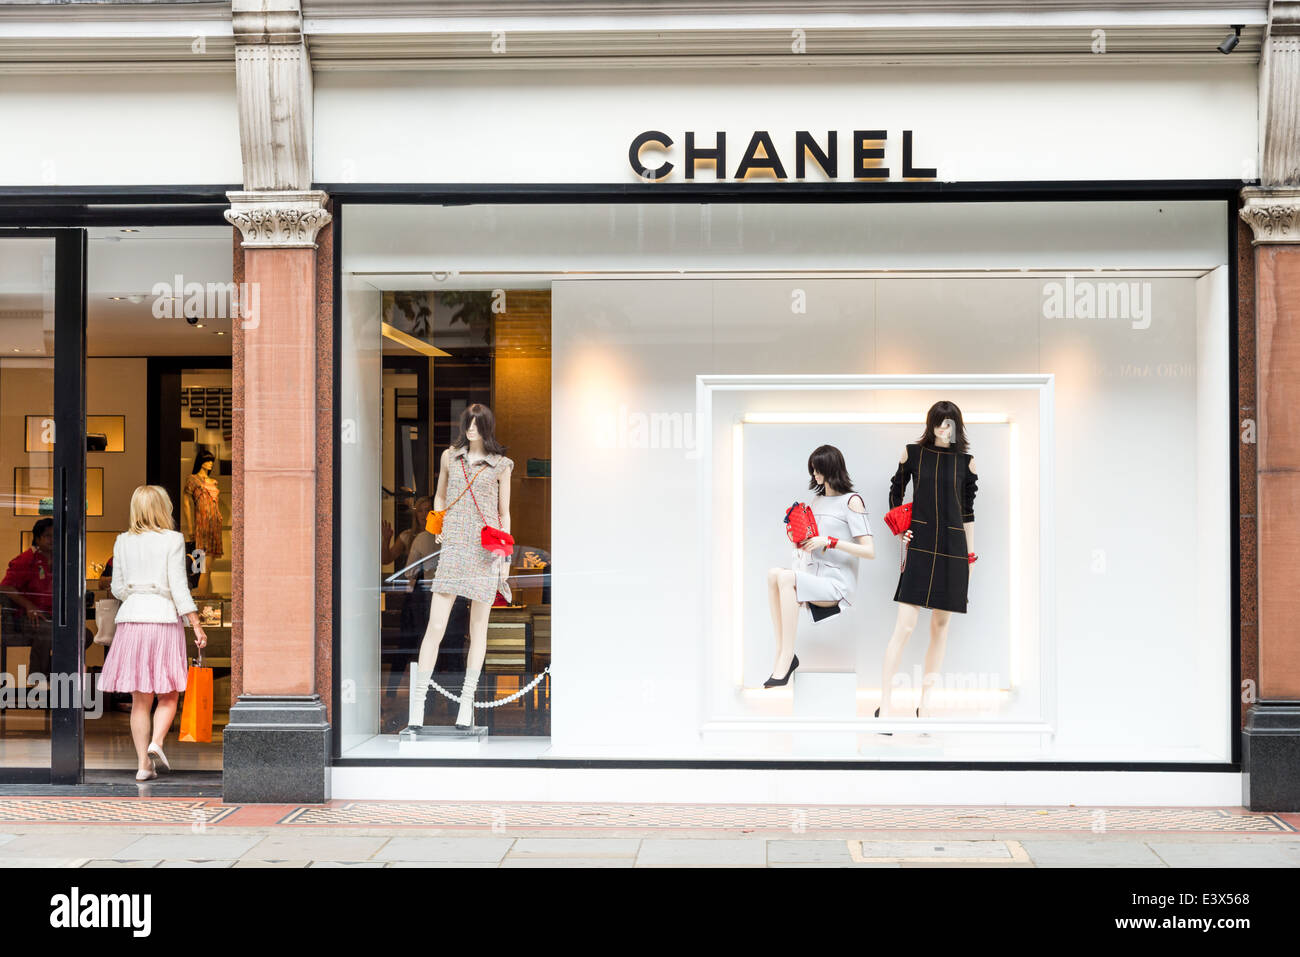 Chanel luxury designer clothes shop on Sloane Street, London Stock ...